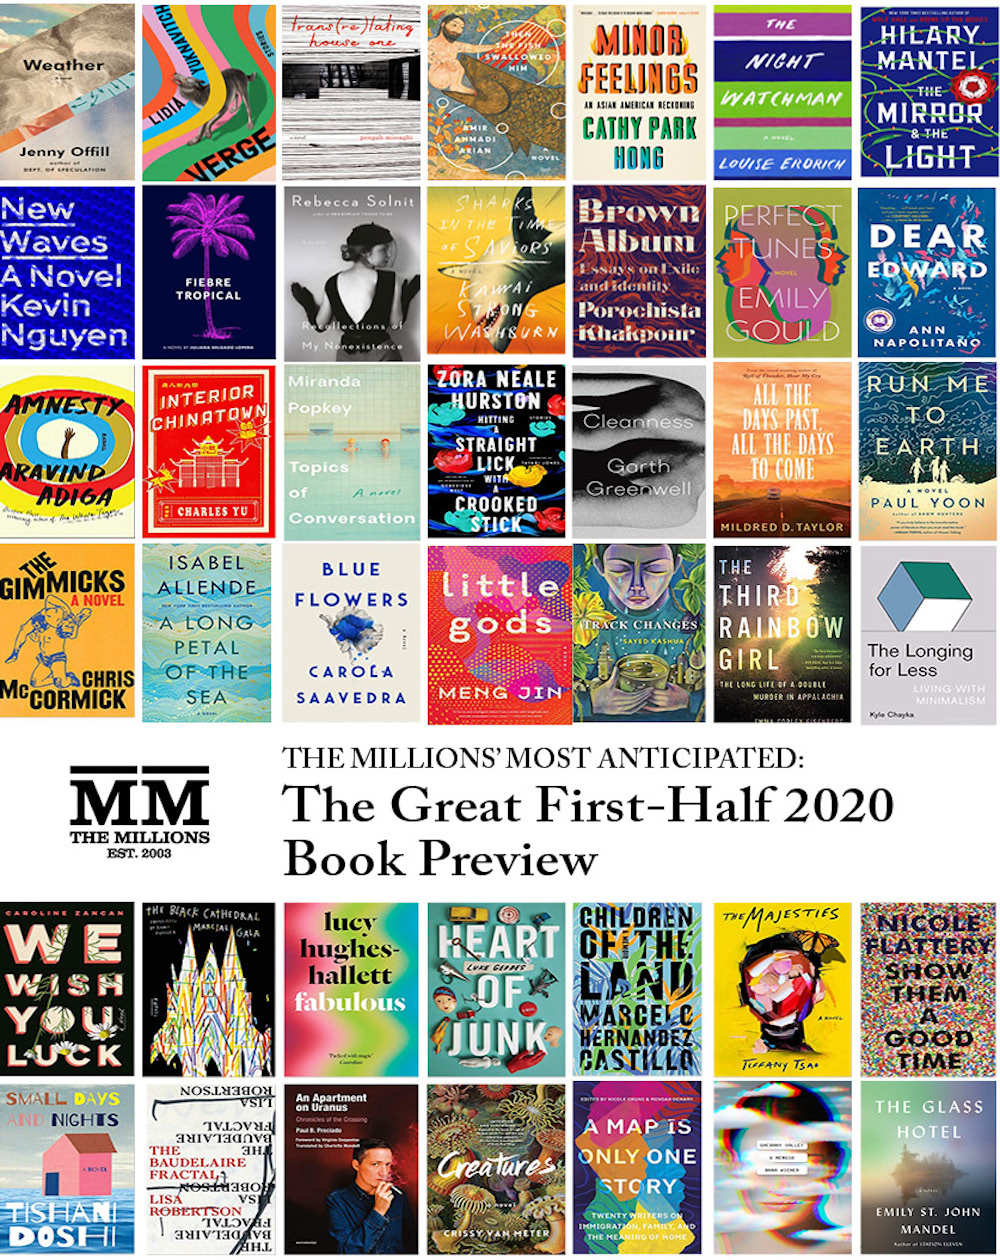 Most Anticipated: The Great First-Half 2020 Book Preview